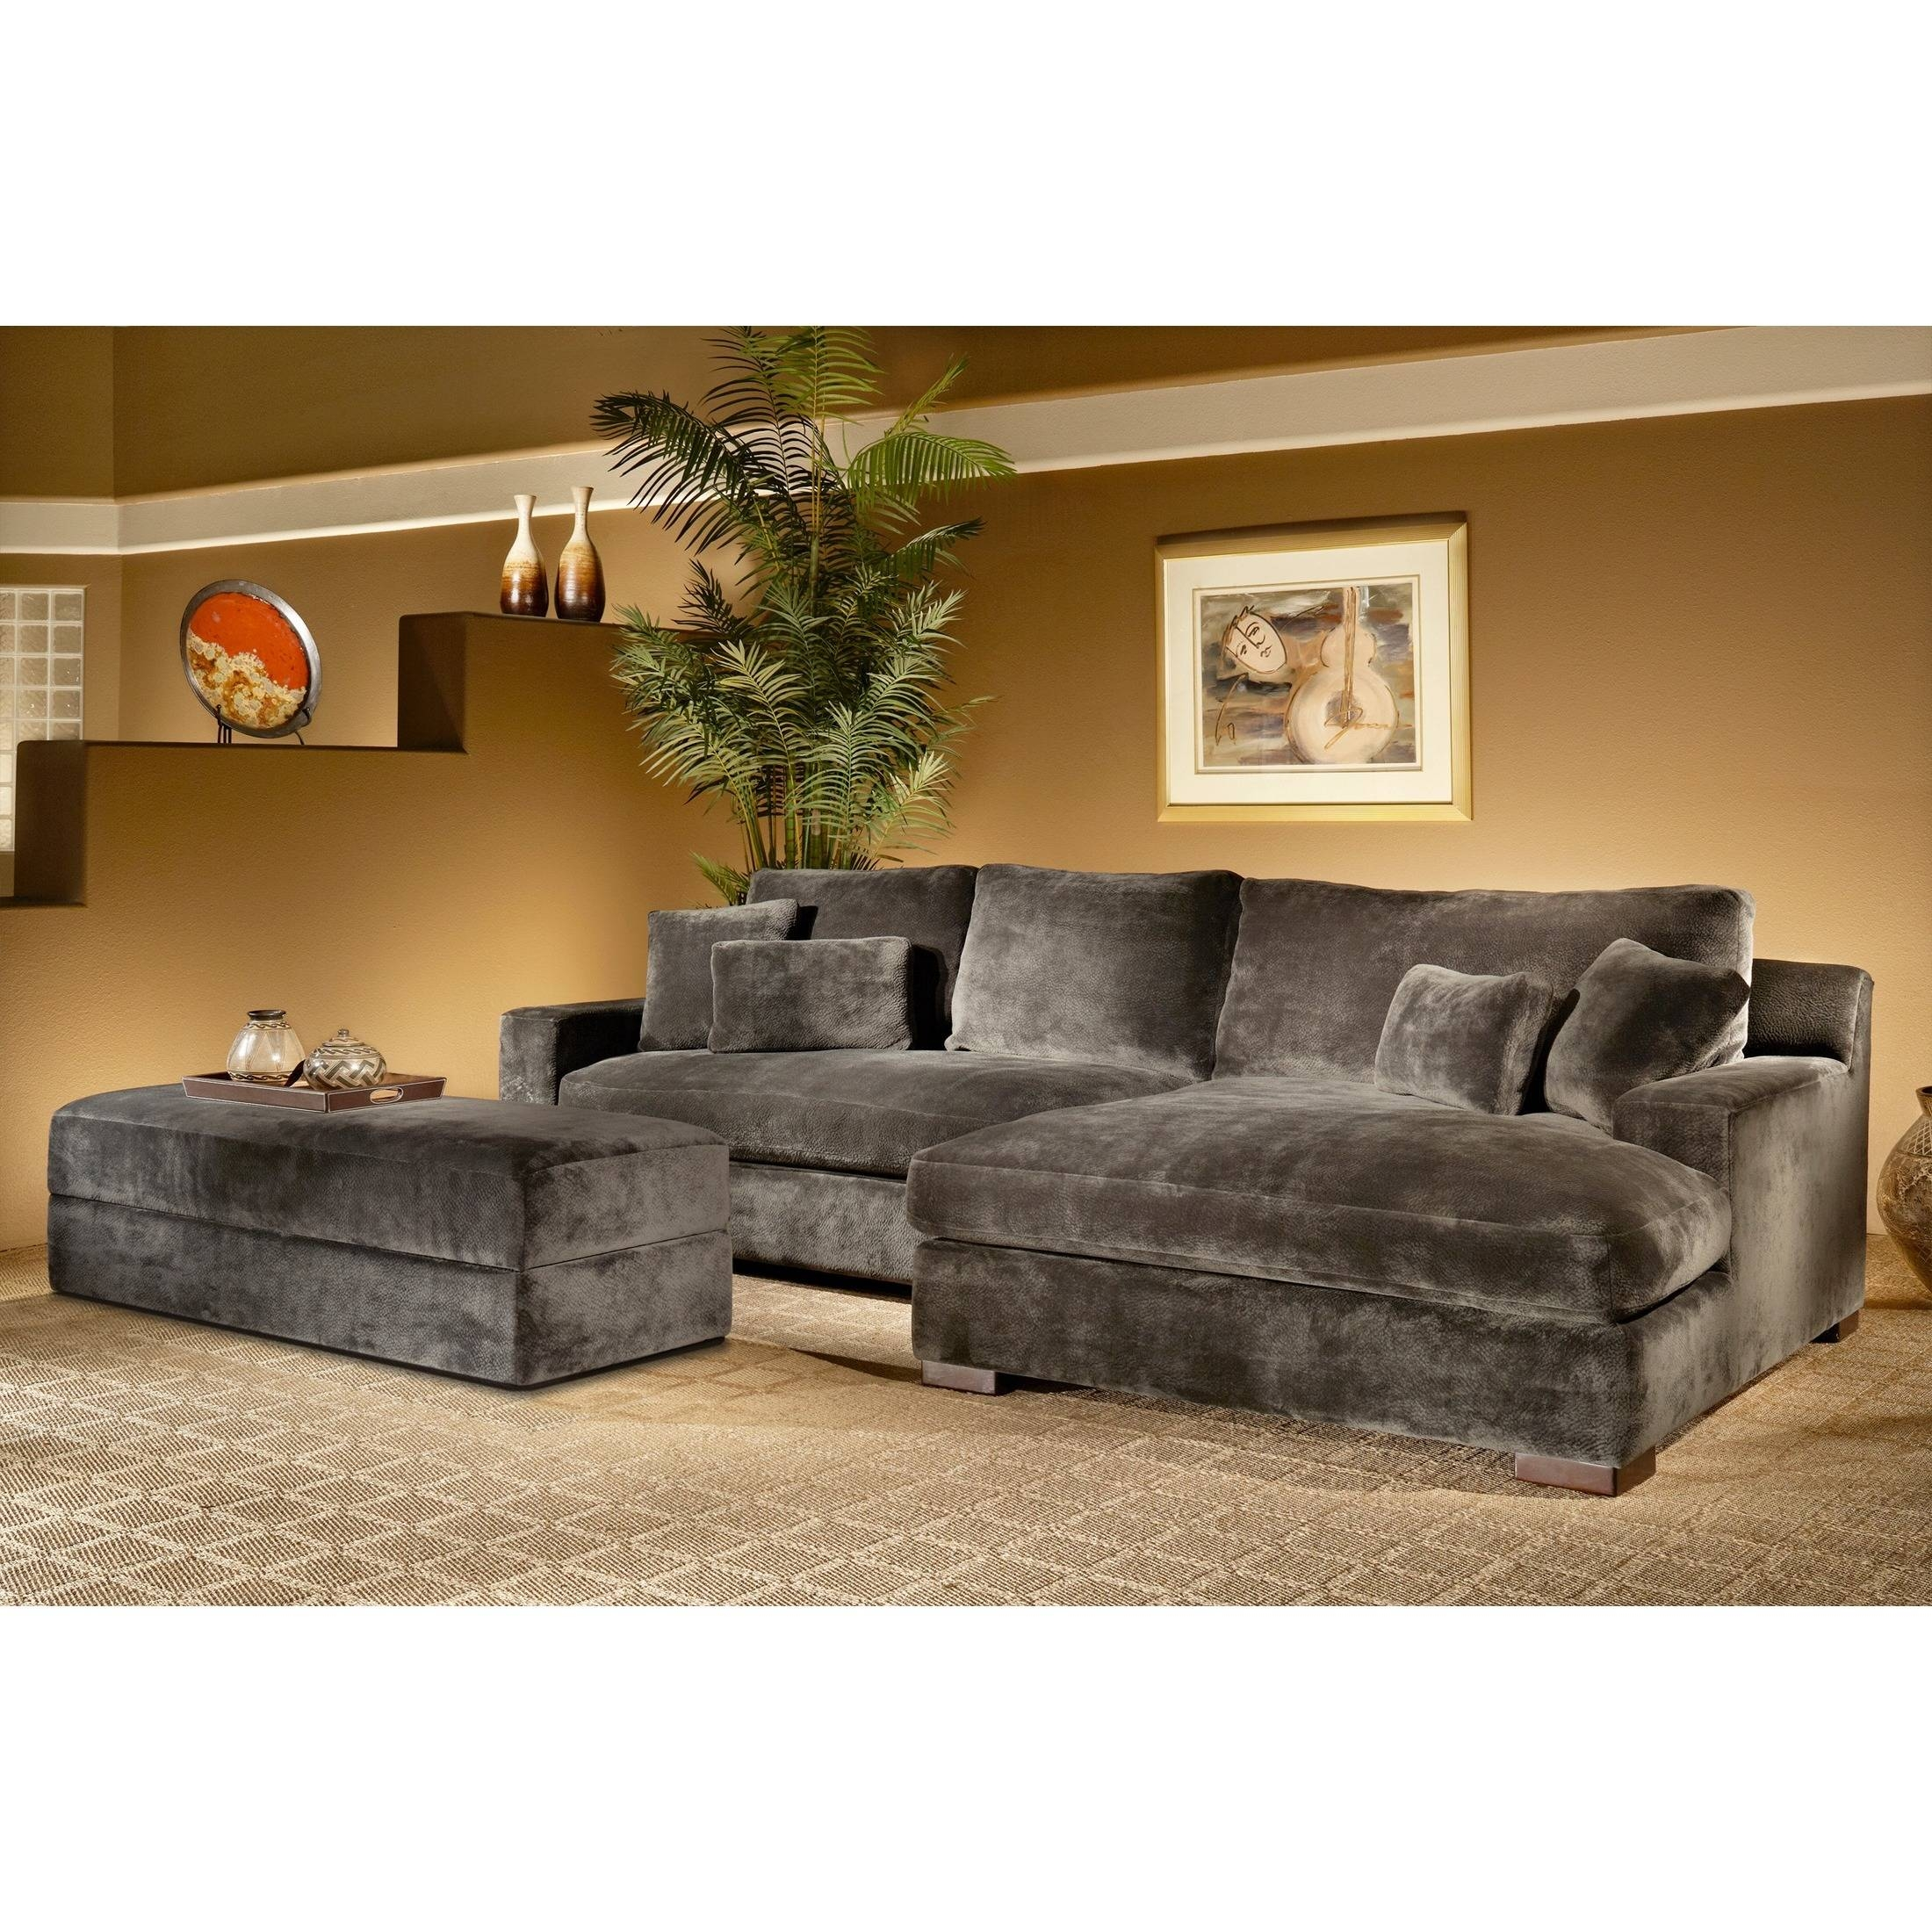 bradley sectional sofa wwwGradschoolfairscom